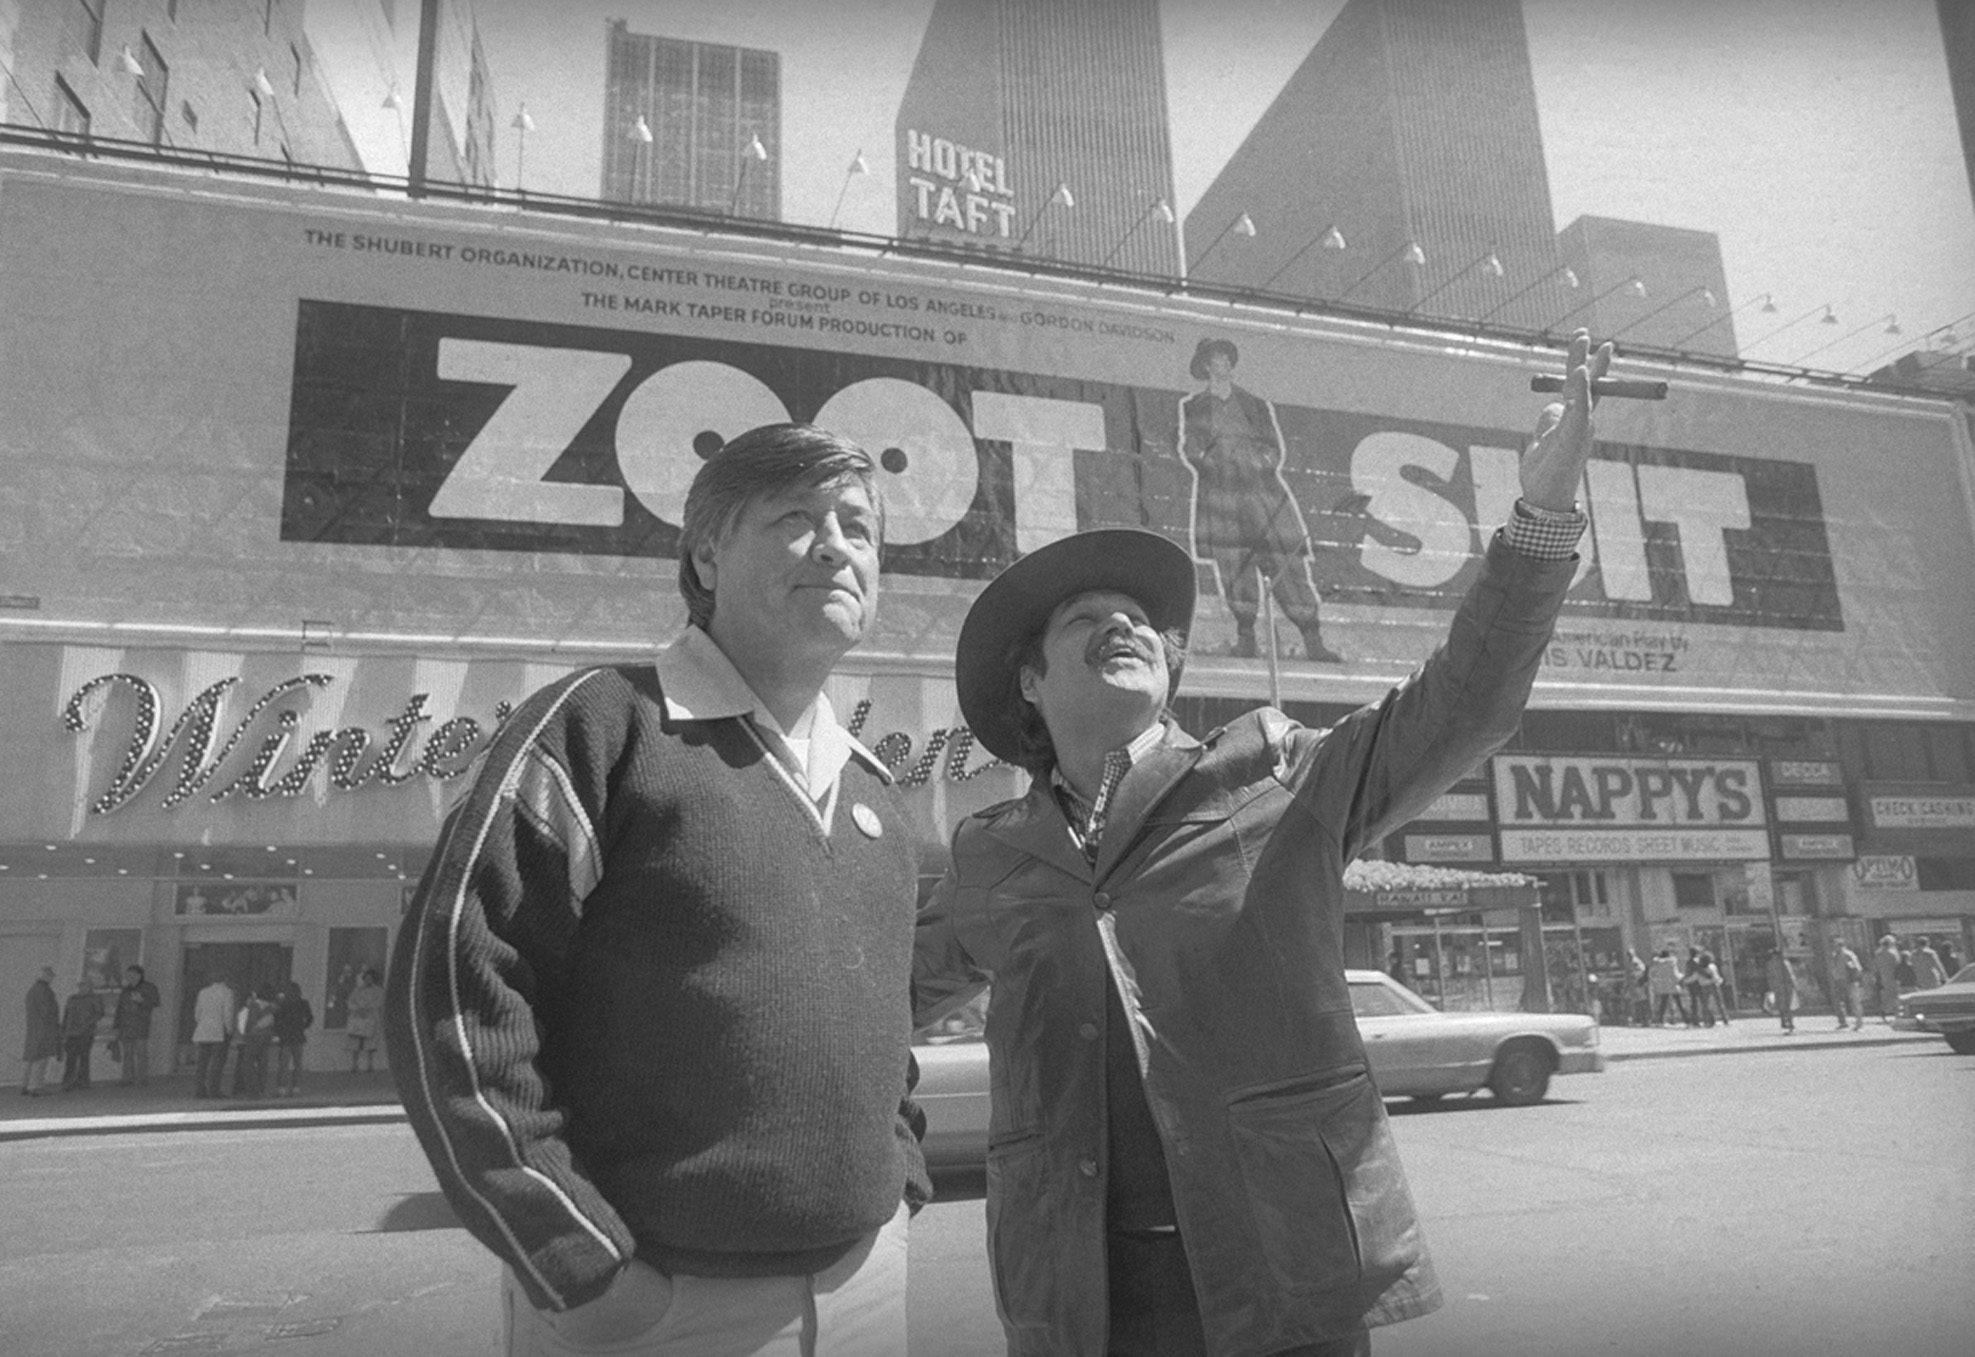 Luis Valdez and Csar Chvez outside the theater where Valdezs play Zoot Suit was playing, 1979.